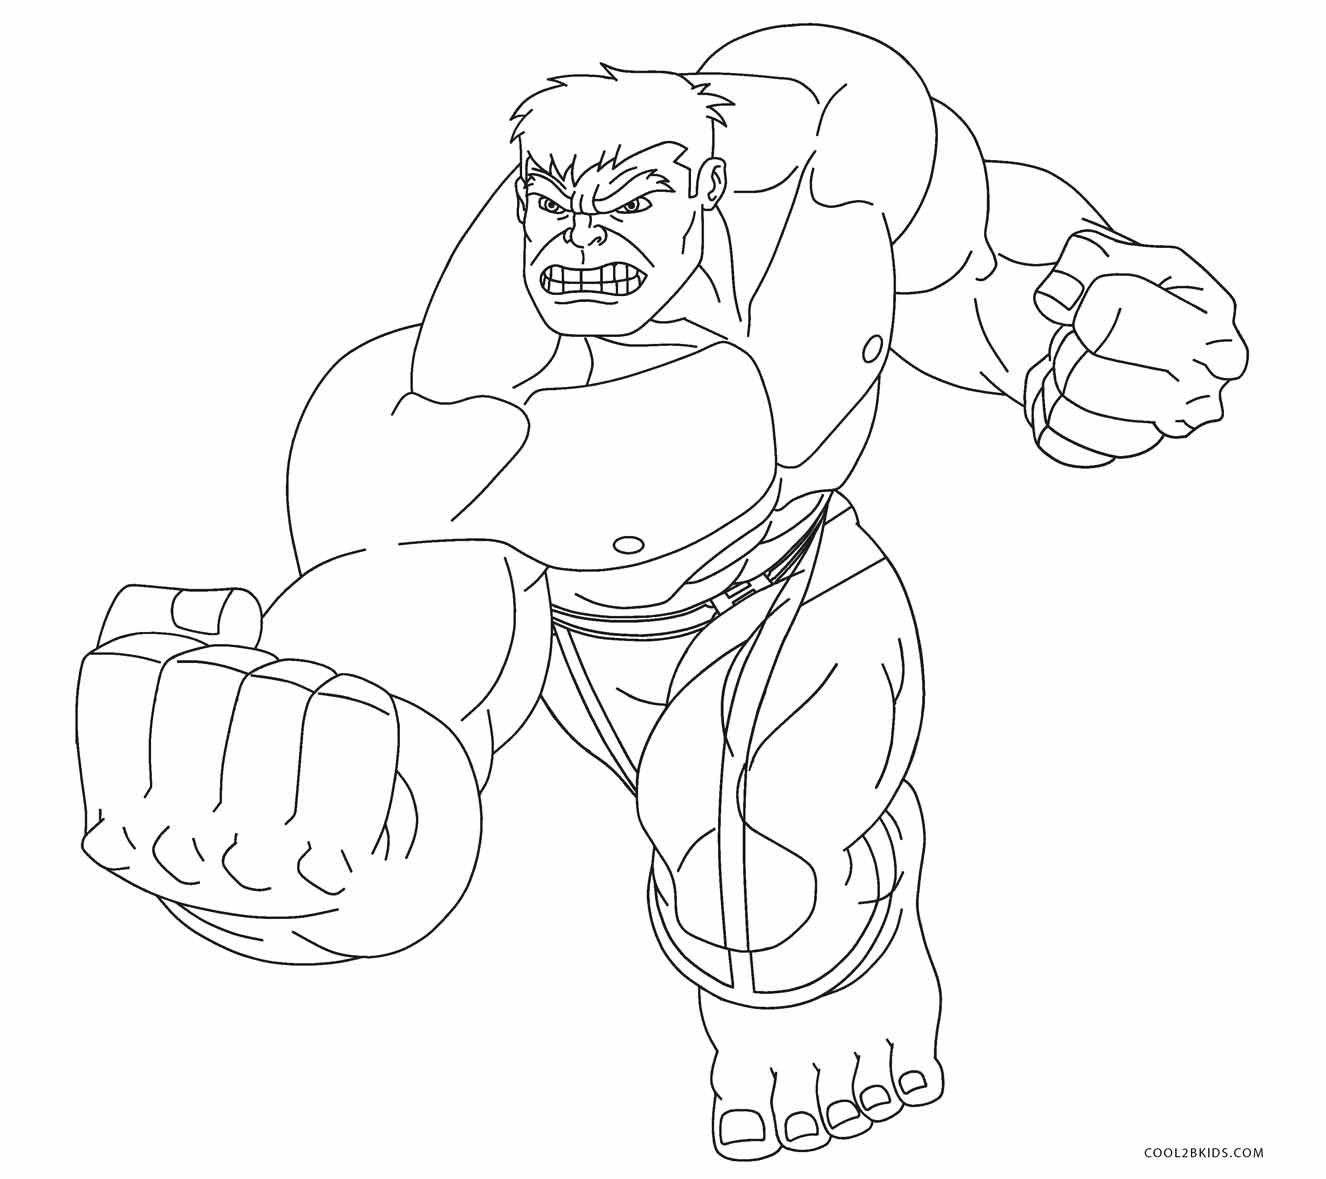 1326x1179 Coloring Pages Hulk Copy Free Printable Hulk Coloring Pages